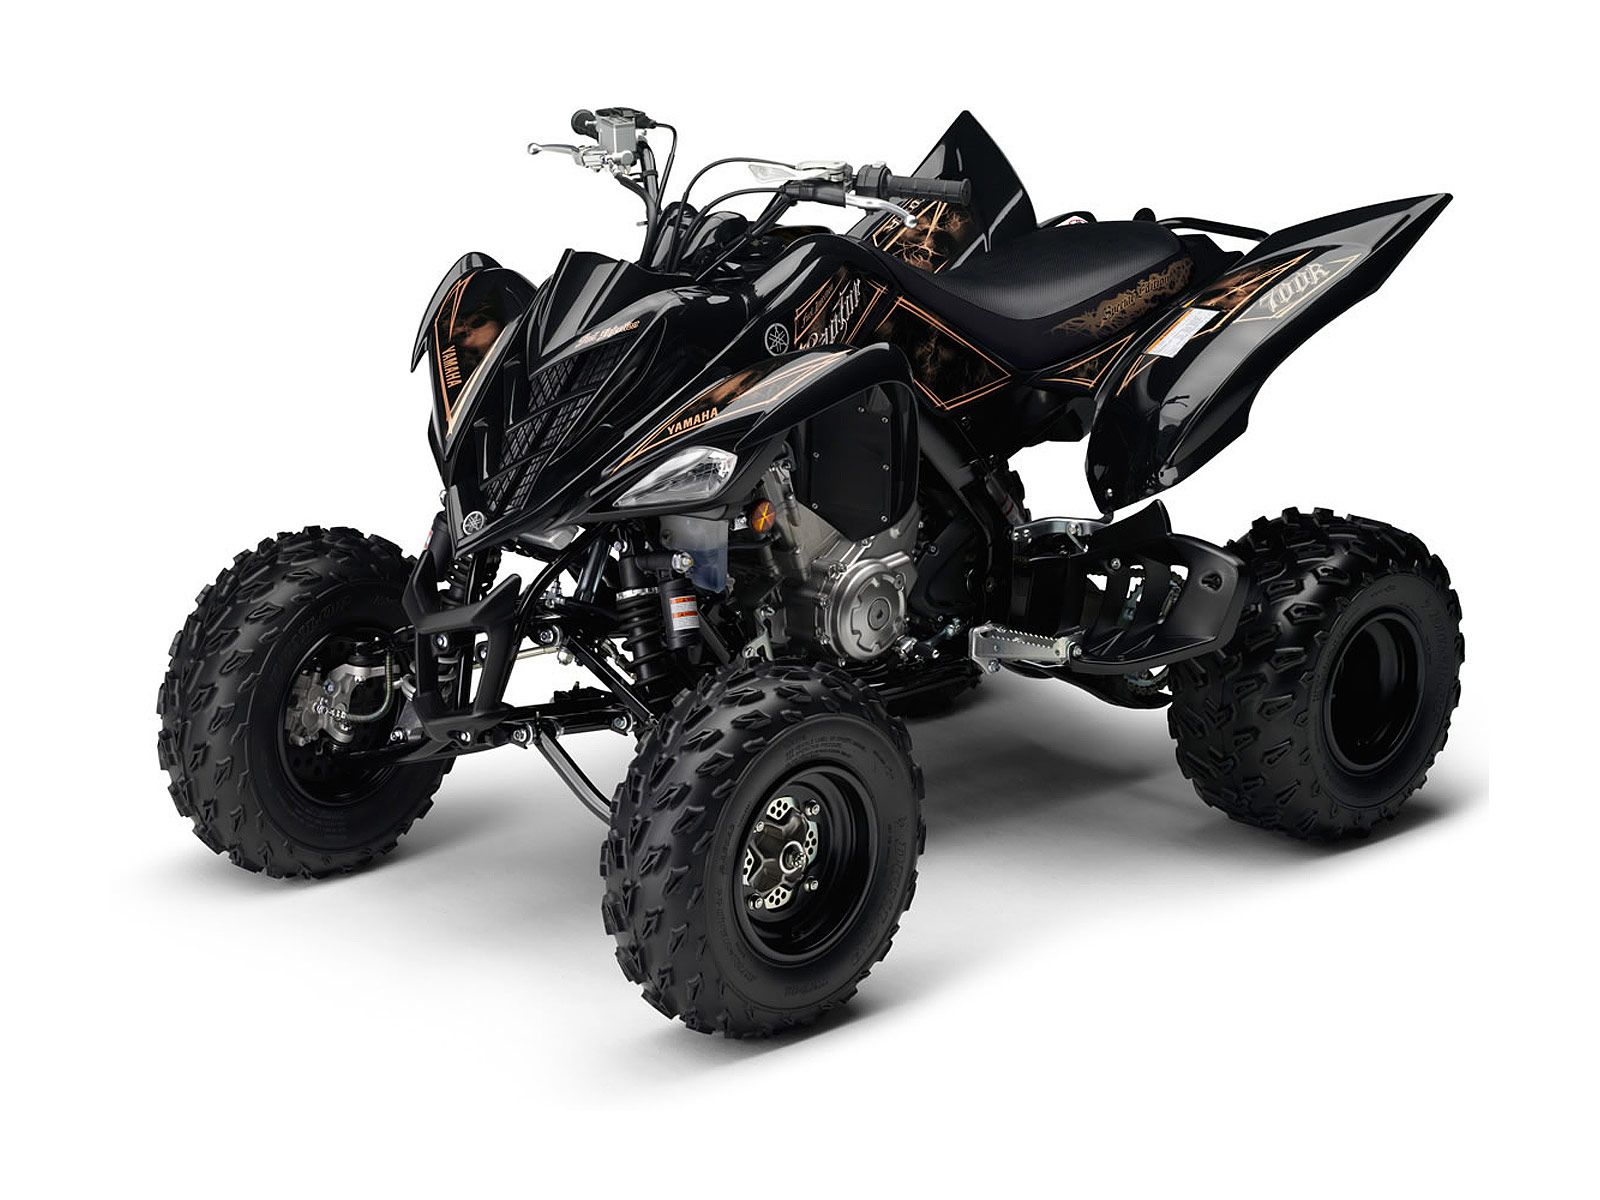 hight resolution of yamaha raptor 700r this is my favorite color scheme from the factory moto quad